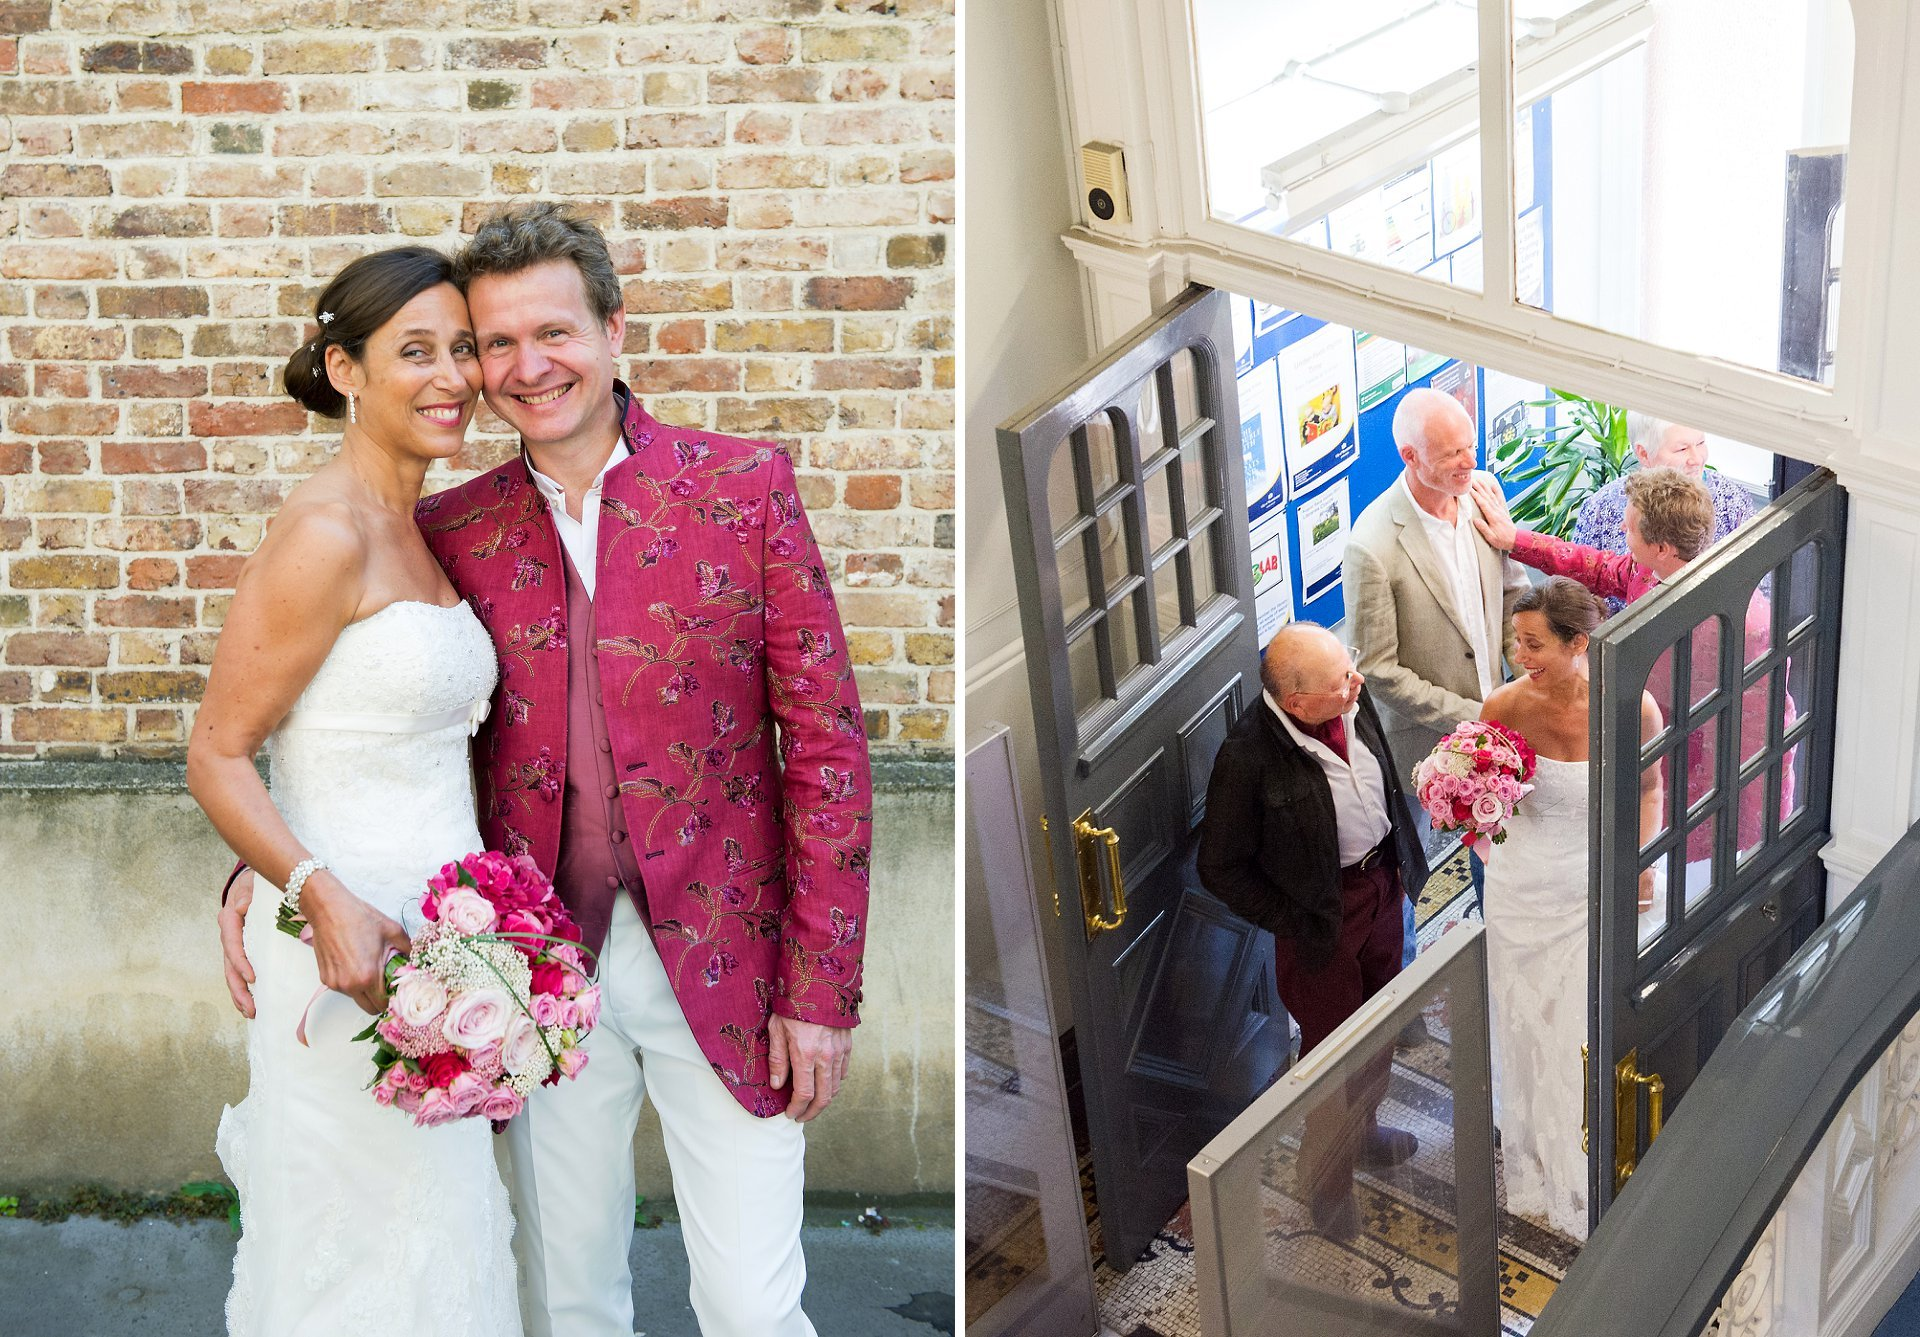 French couple marrying in London at Westminster Register Office, Mayfair Library, in bright colours of raspberry